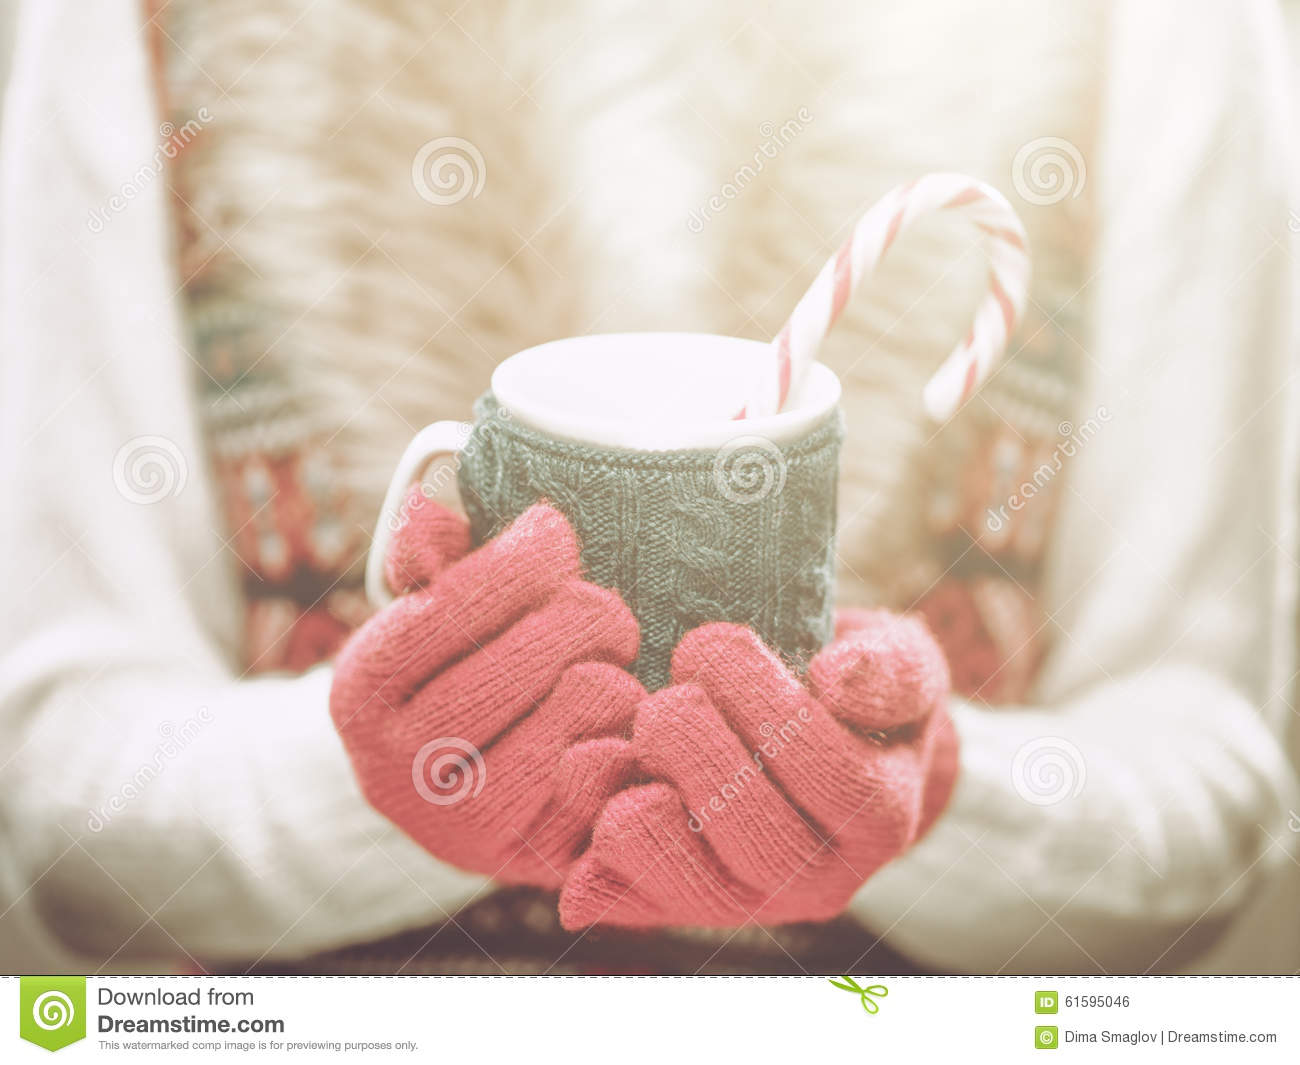 ... cocoa, tea or coffee and a candy cane. Winter and Christmas concept